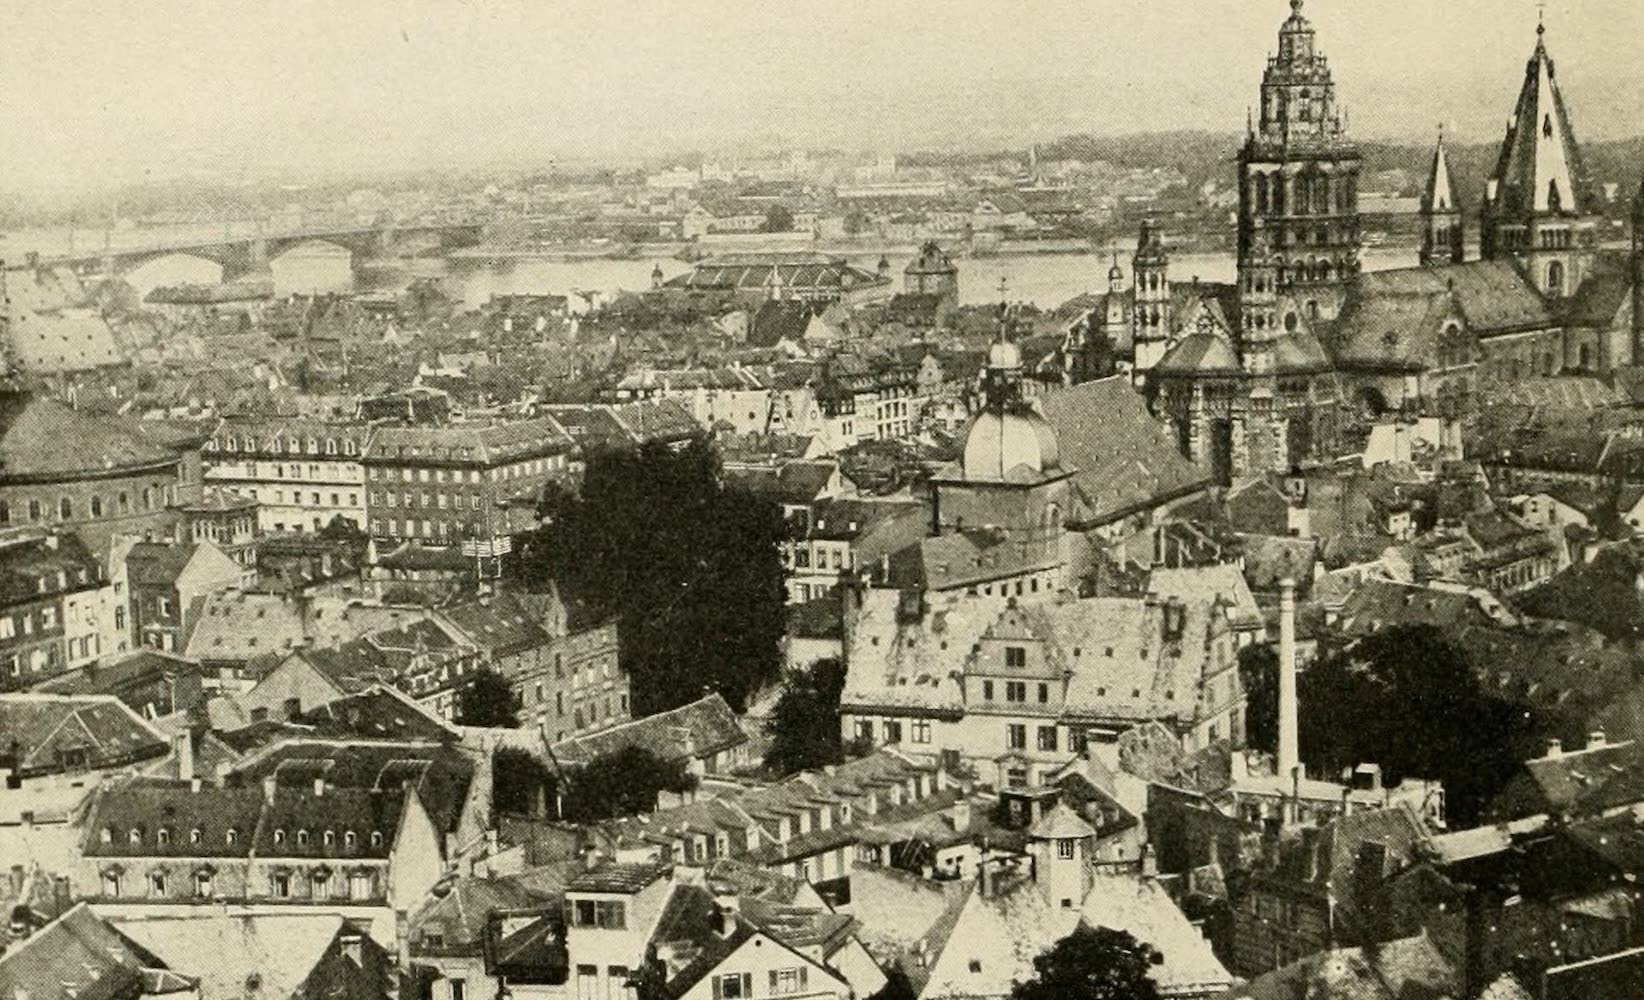 Laird & Lee's World's War Glimpses - A View of the City of Mainz (1914)